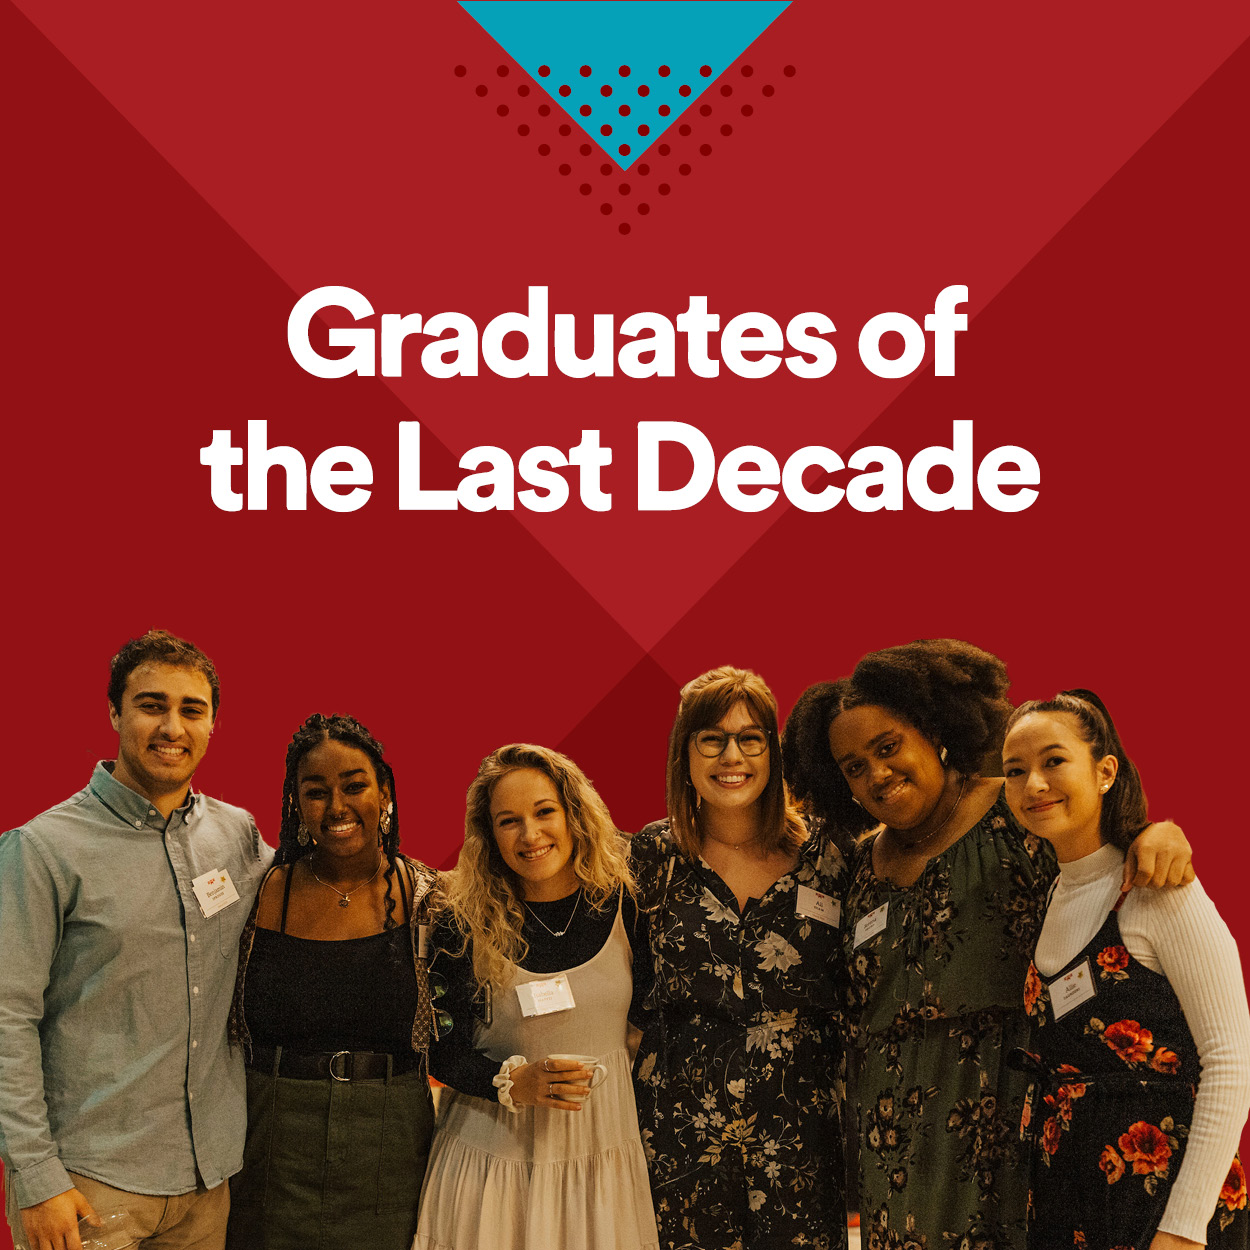 A image that says Gradutes of the Last Decade and has a photo cut out of six people posing for a picture